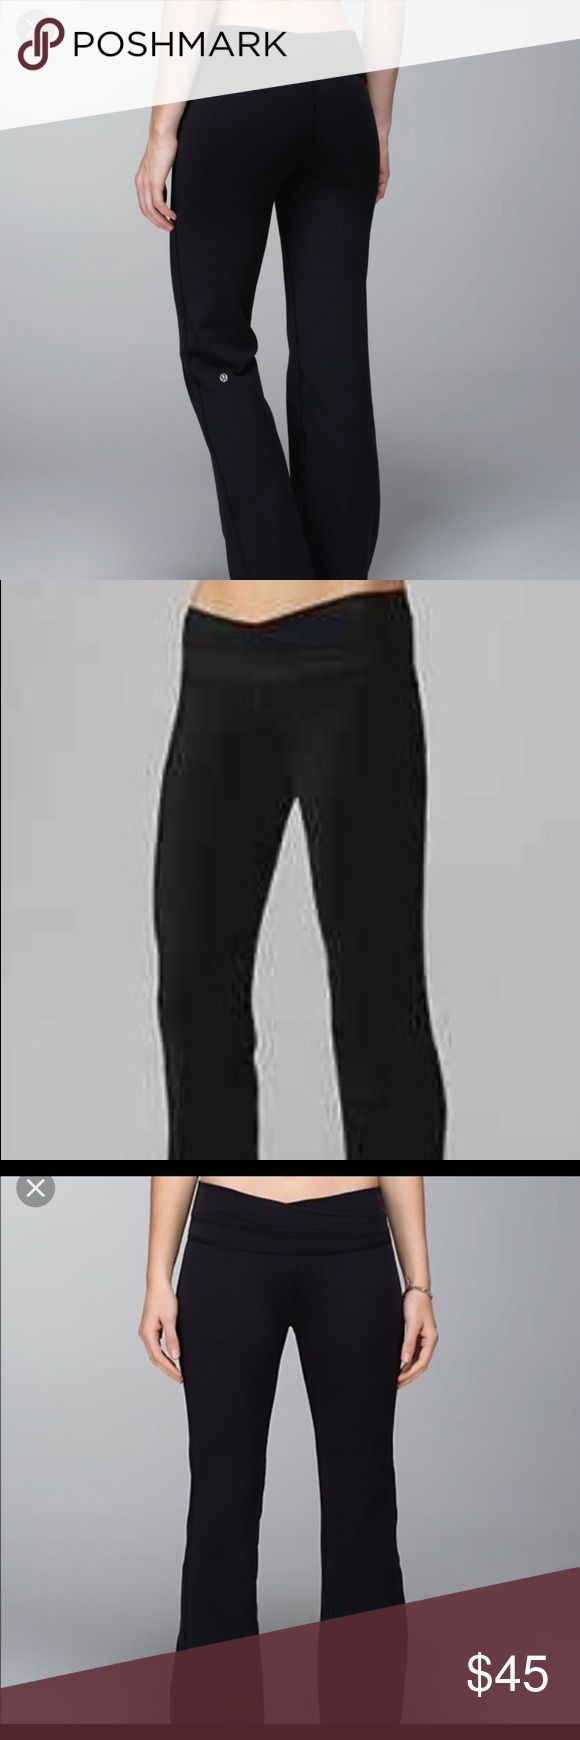 Lululemon size 2 Black Astro pant spandex They still have inside tag & it looks brand new!  luon, four-way stretch and moisture wicking help keep you comfortable on the mat gusset designed for greater range of movement and comfort back waistband pocket for cards and keys wear the waistband as-is for a higher rise or roll down for a lower rise just say no to chafing with flat seams  properties: four-way stretch, moisture wicking, preshrunk, breathable rise: low or high - you decide leg fit…